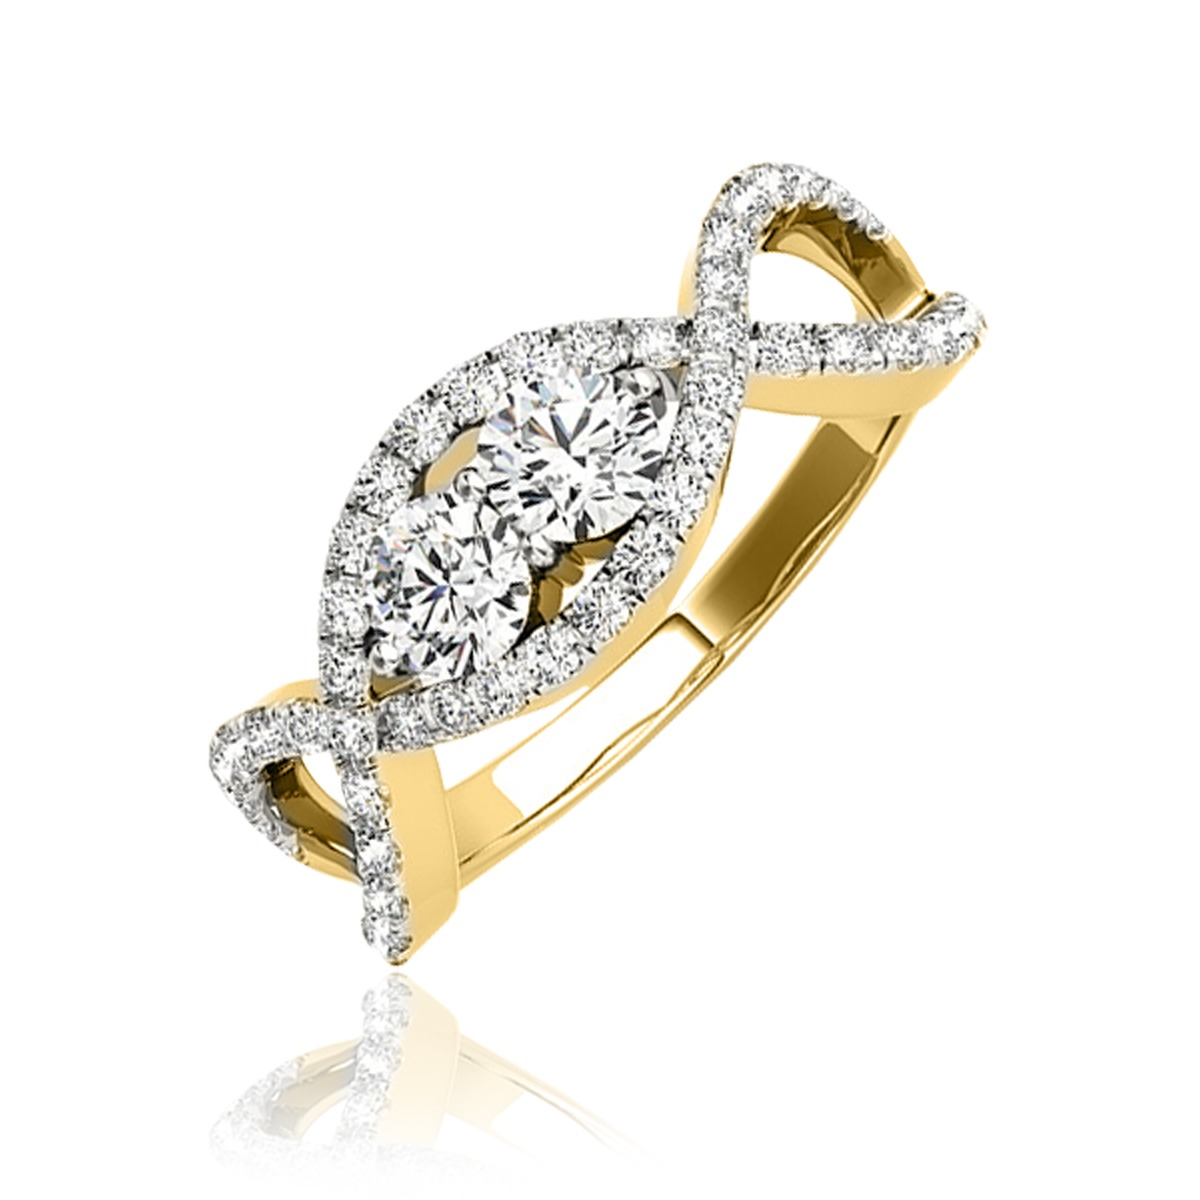 1 1/3 Carat T.W. Round Cut Diamond Two Stone Ring 14K Yellow Gold